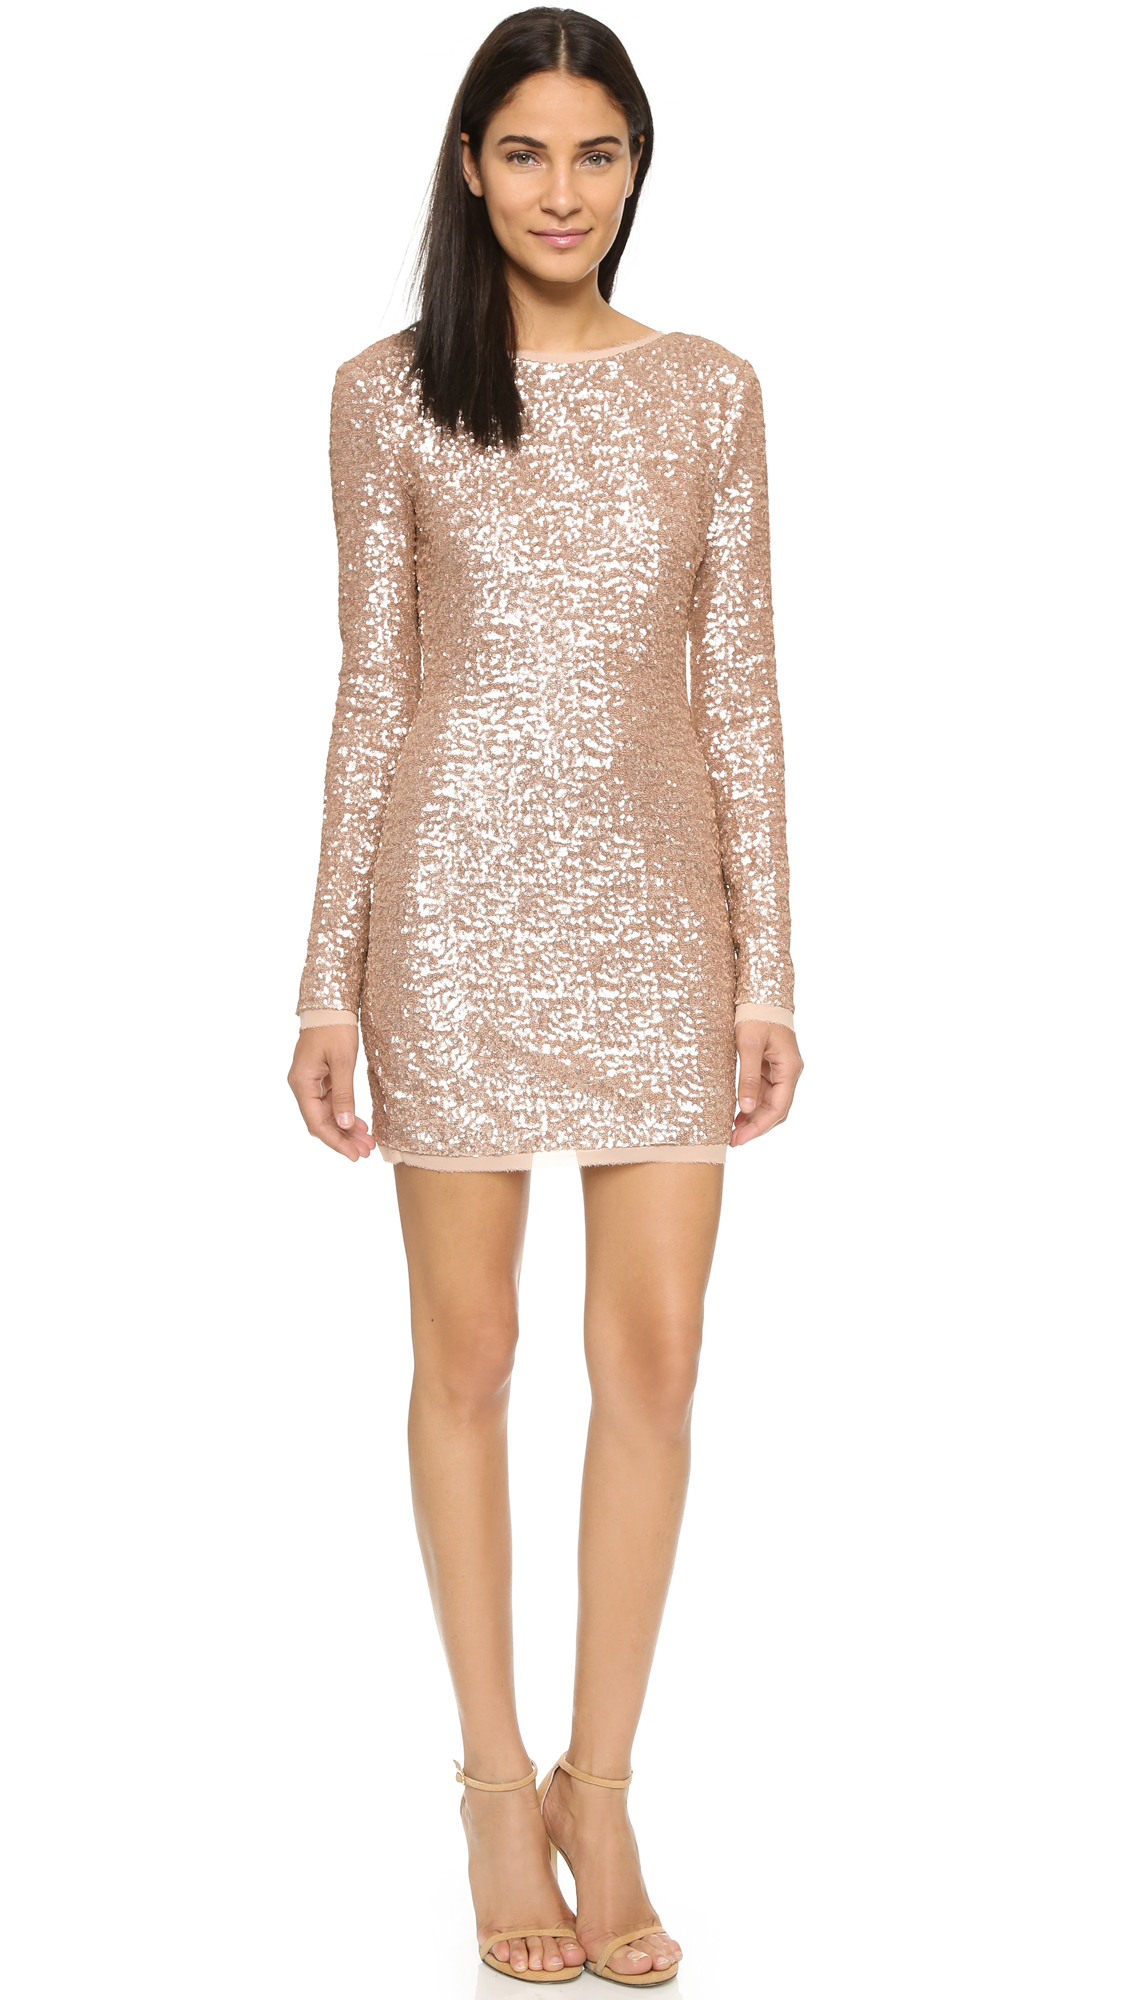 Rachel Zoe Sequin Mini Dress In Pink Lyst